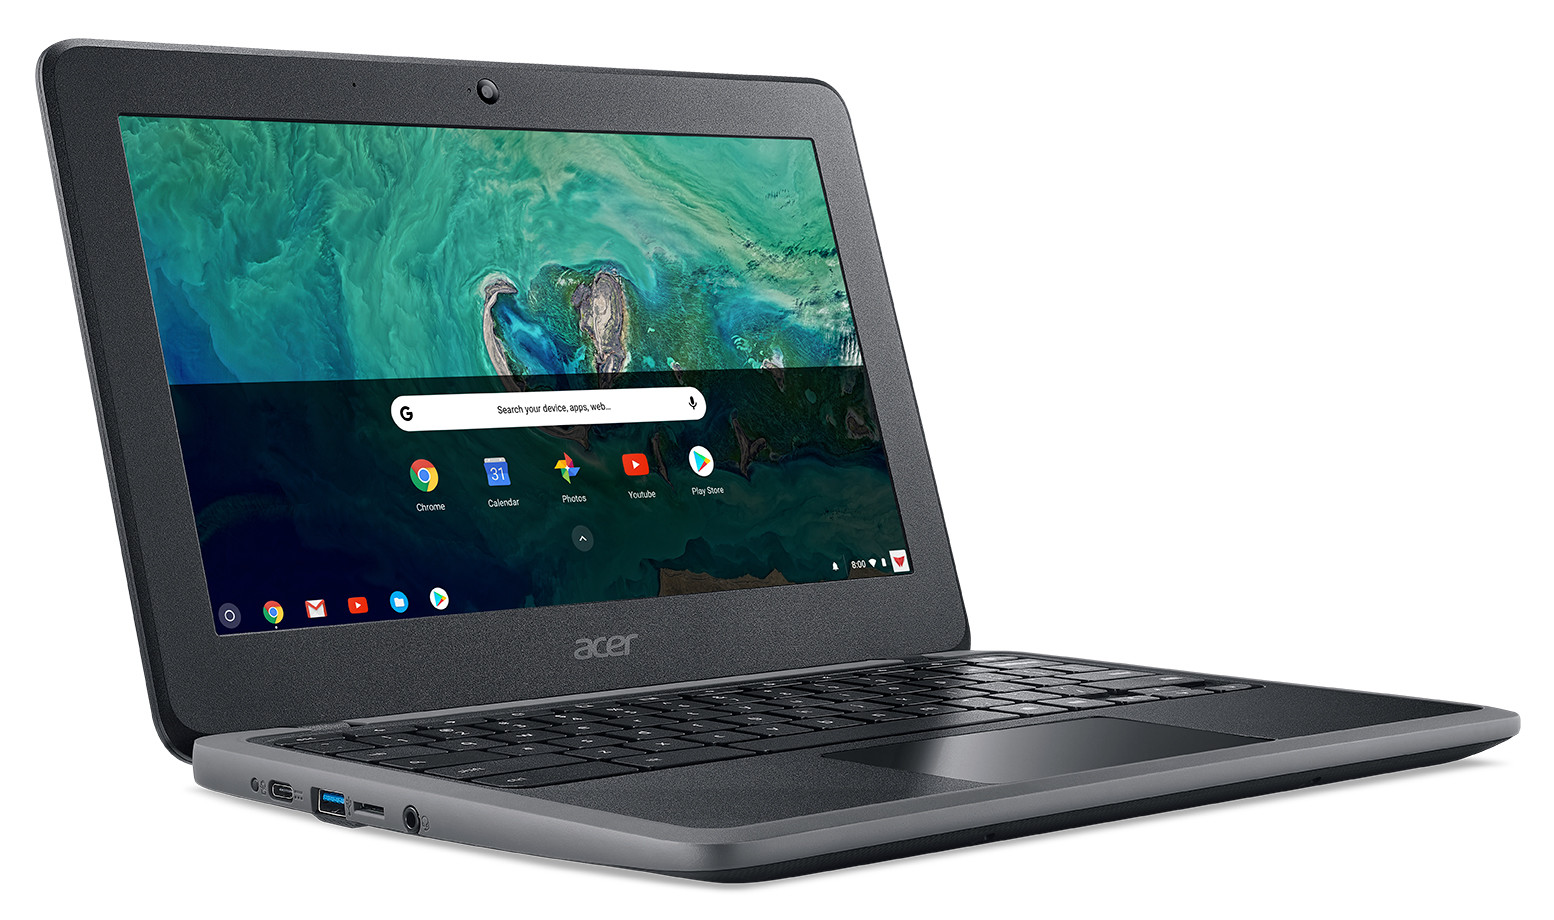 Acer announces new affordable Chromebook duo